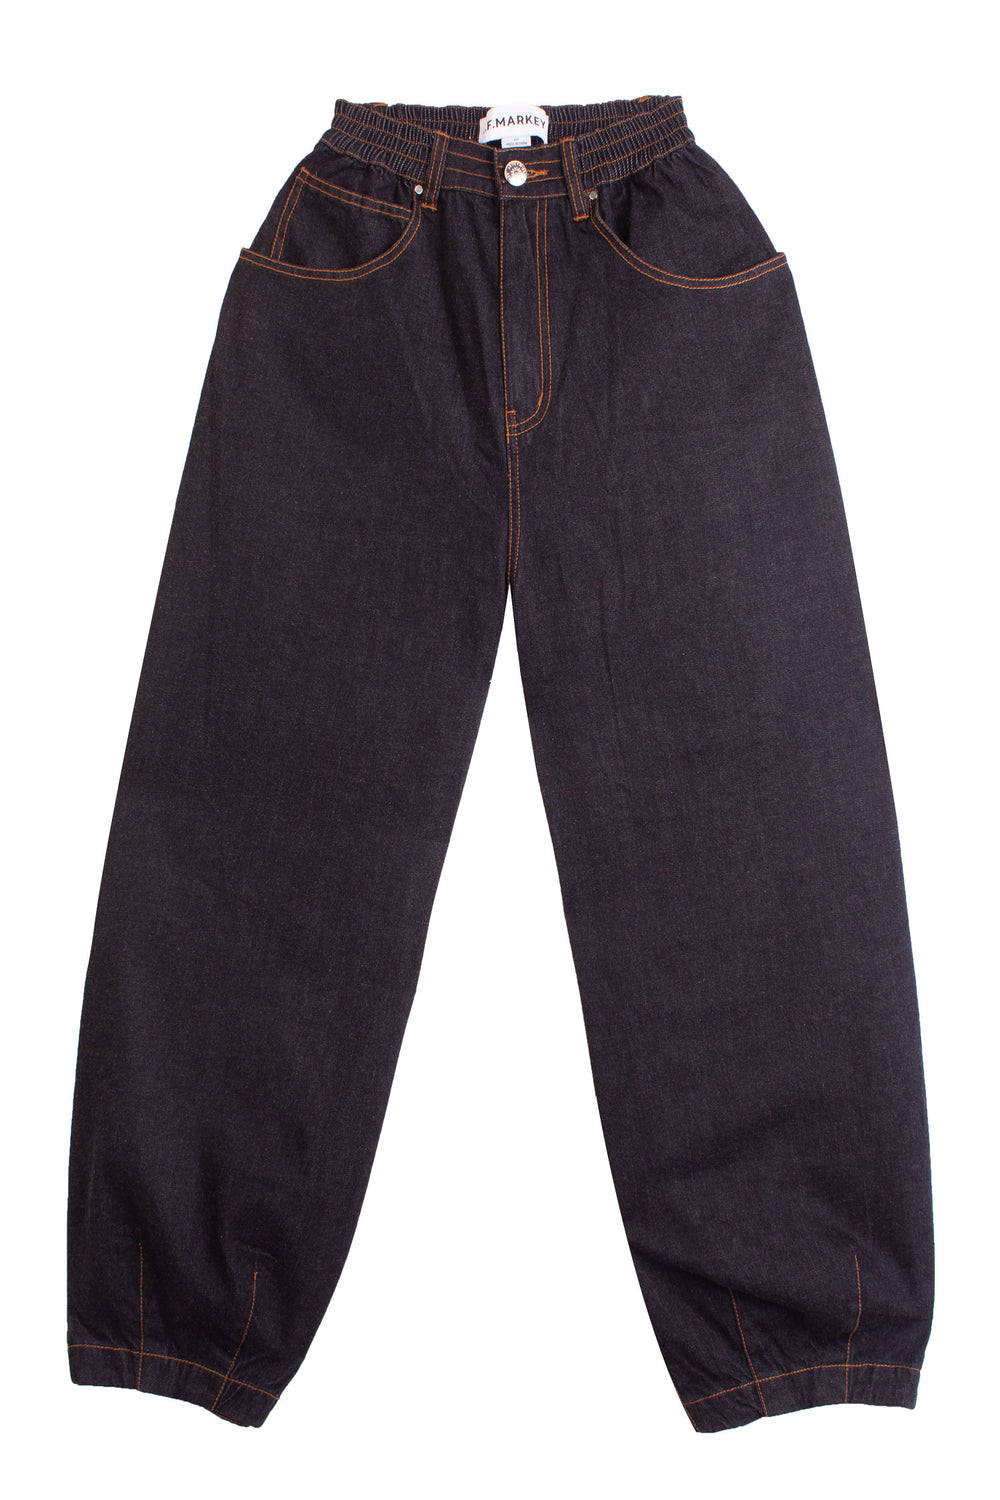 Fat Boys Jeans Black Denim